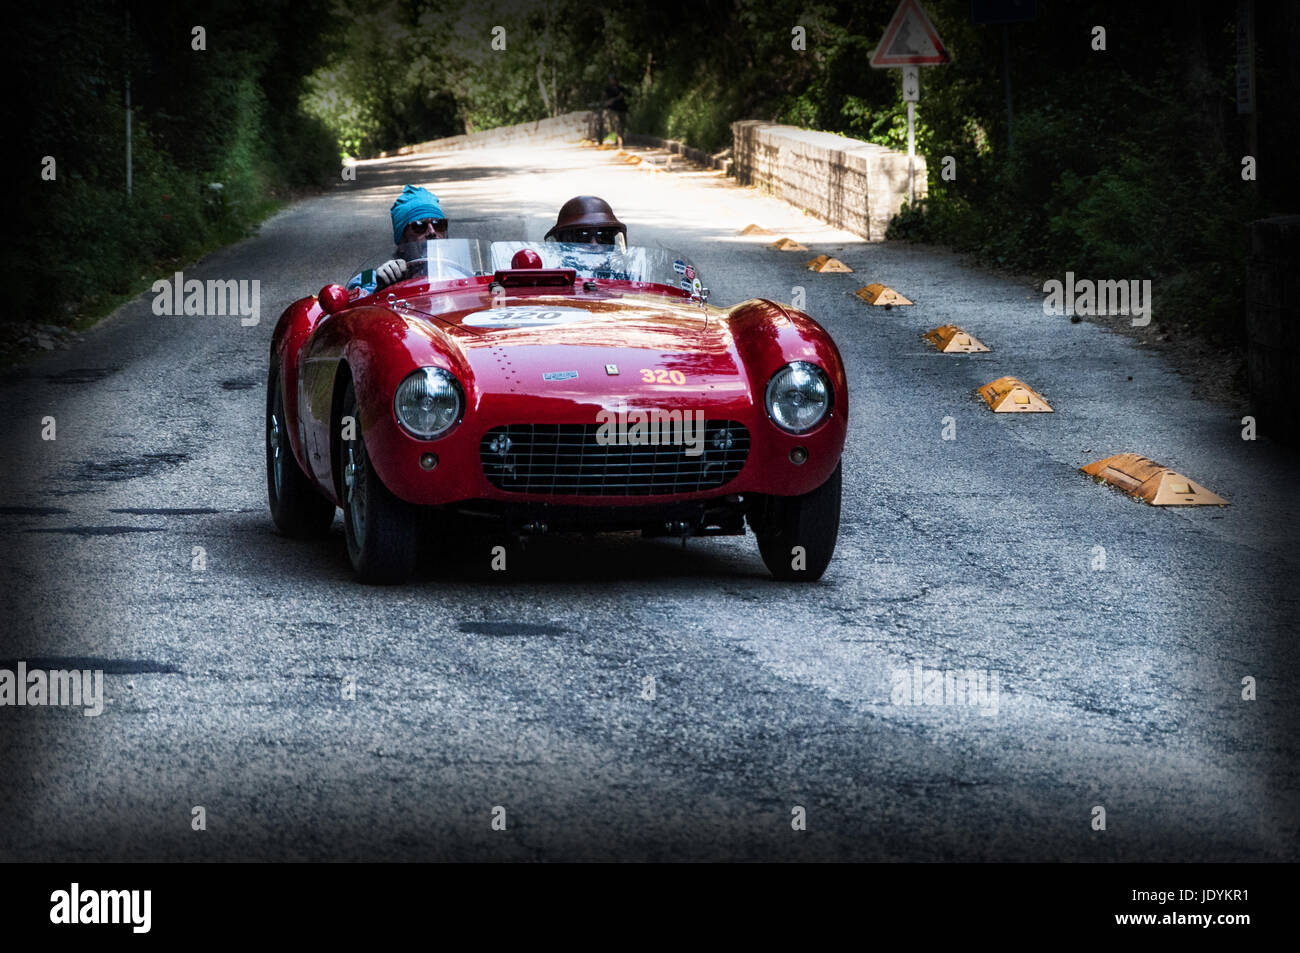 FERRARI 500 MONDIAL 1954 on an old racing car in rally Mille